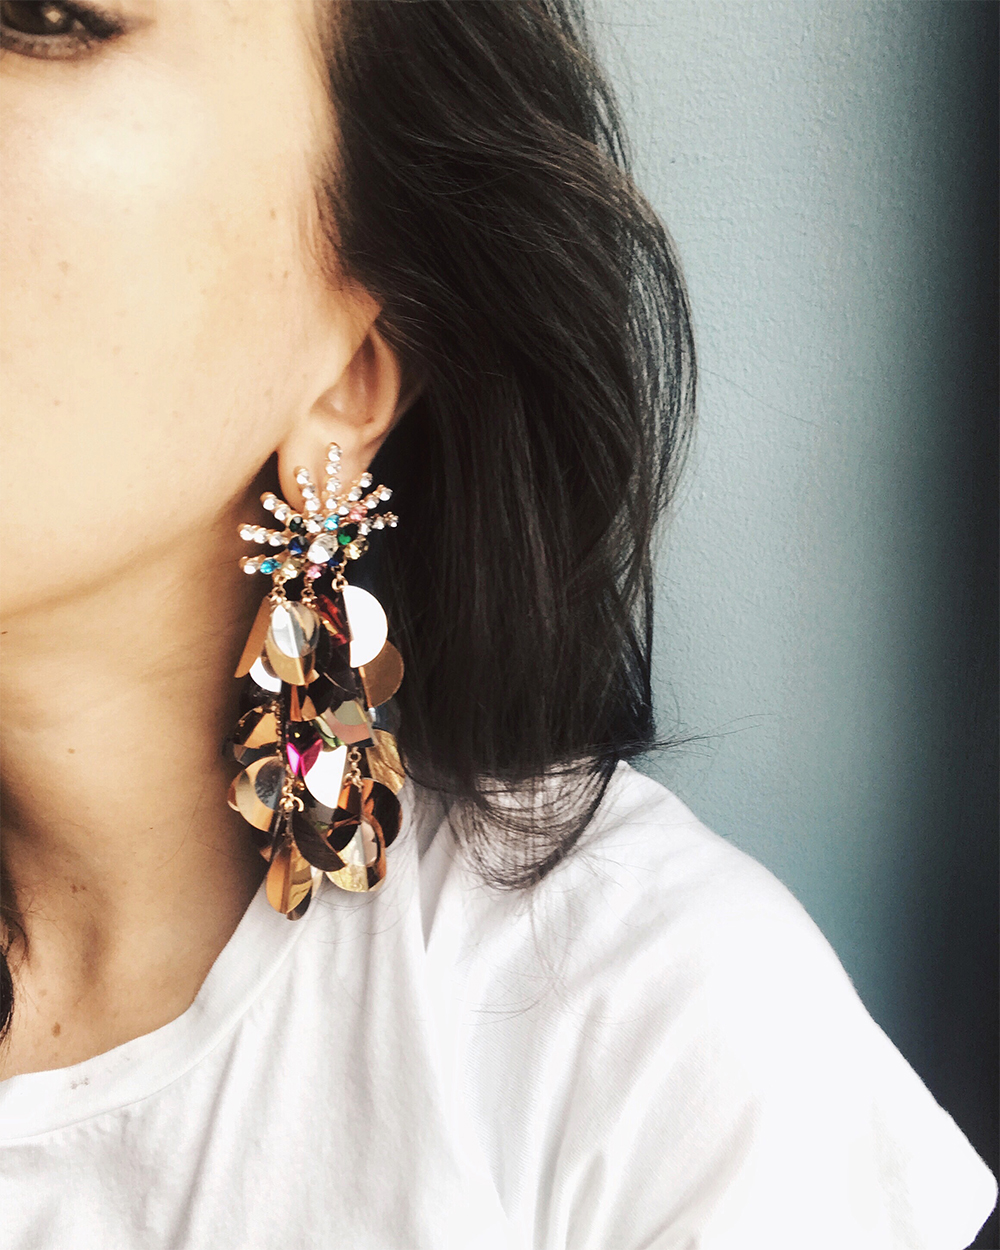 sania claus demina bling earrings zara aw17